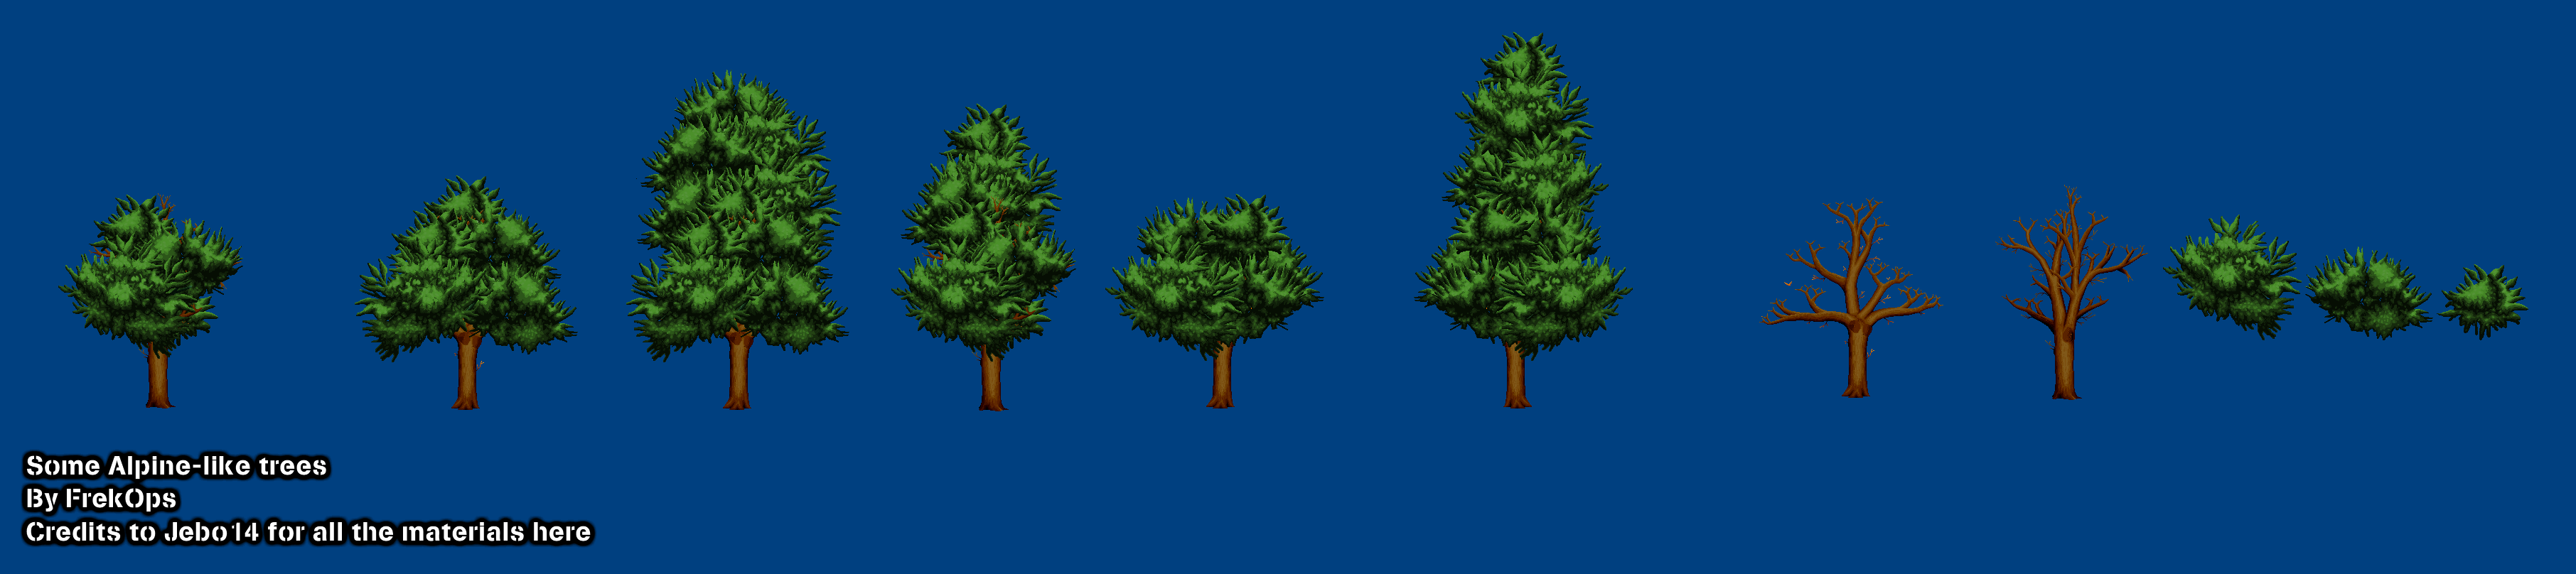 treees_by_freak_ops-dc5qrec.png